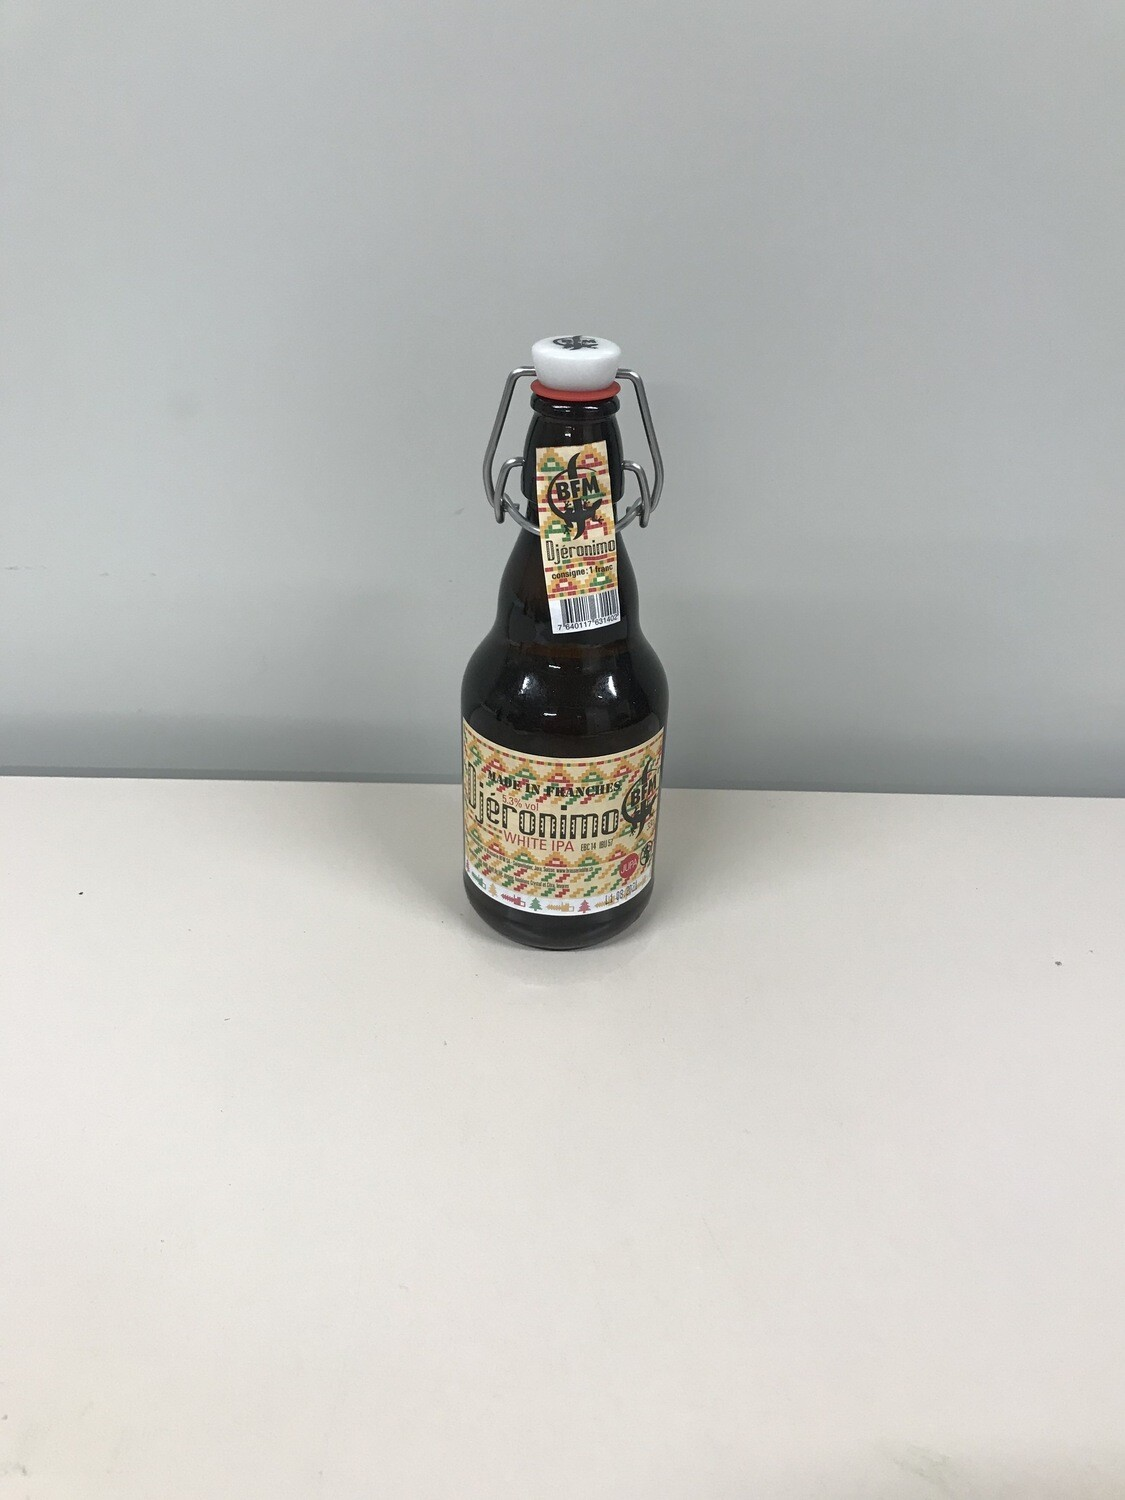 biere bouteille djeronimo blanche ipa 5.35% 33 cl  4.- +consigne 1.-